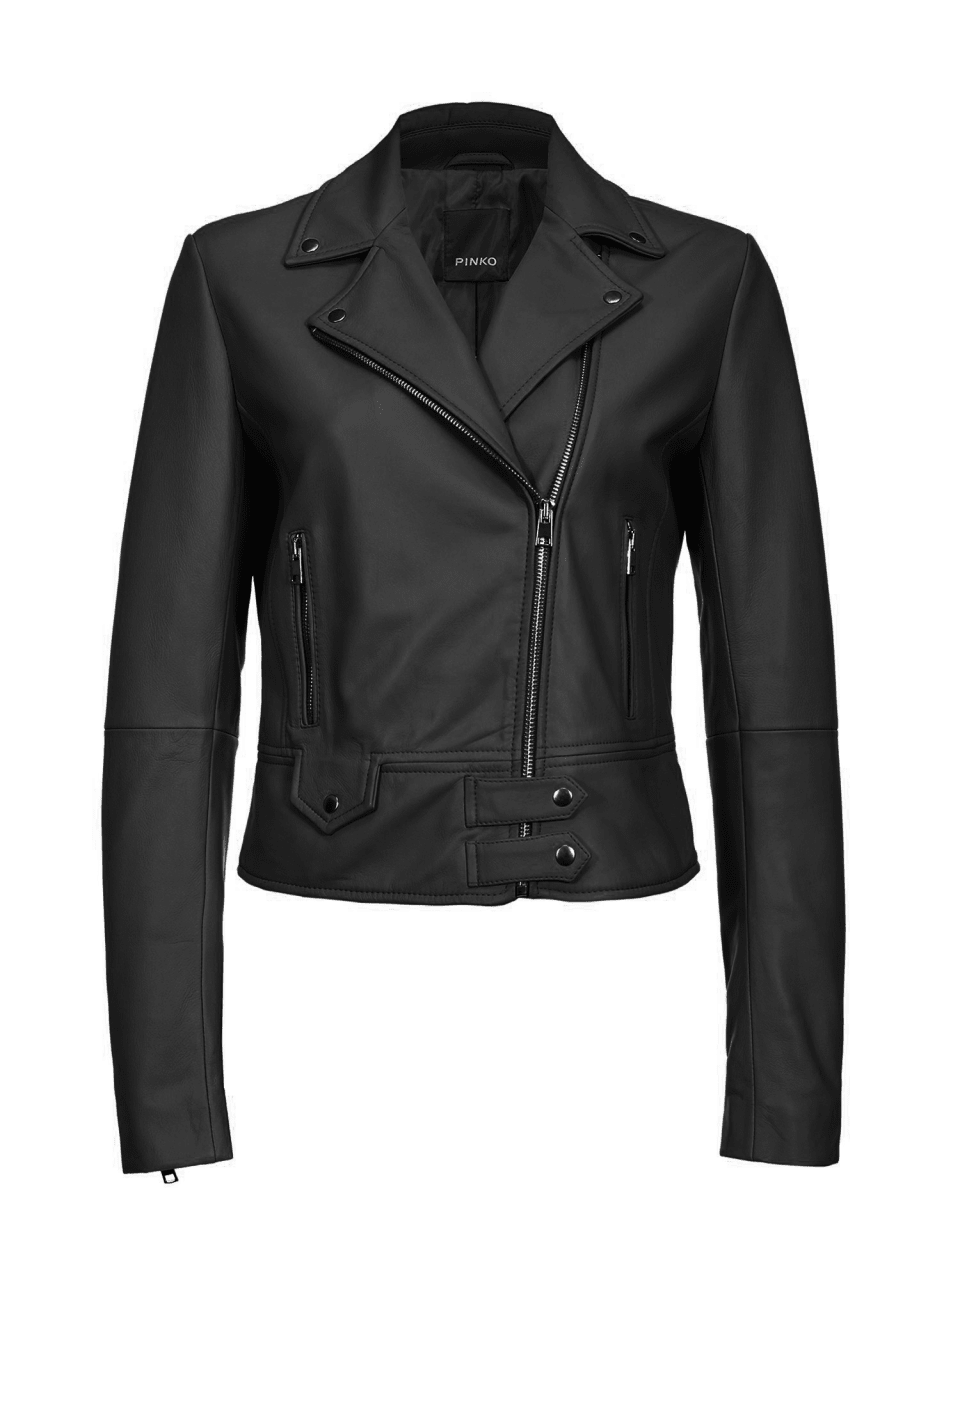 Leather biker jacket - Pinko